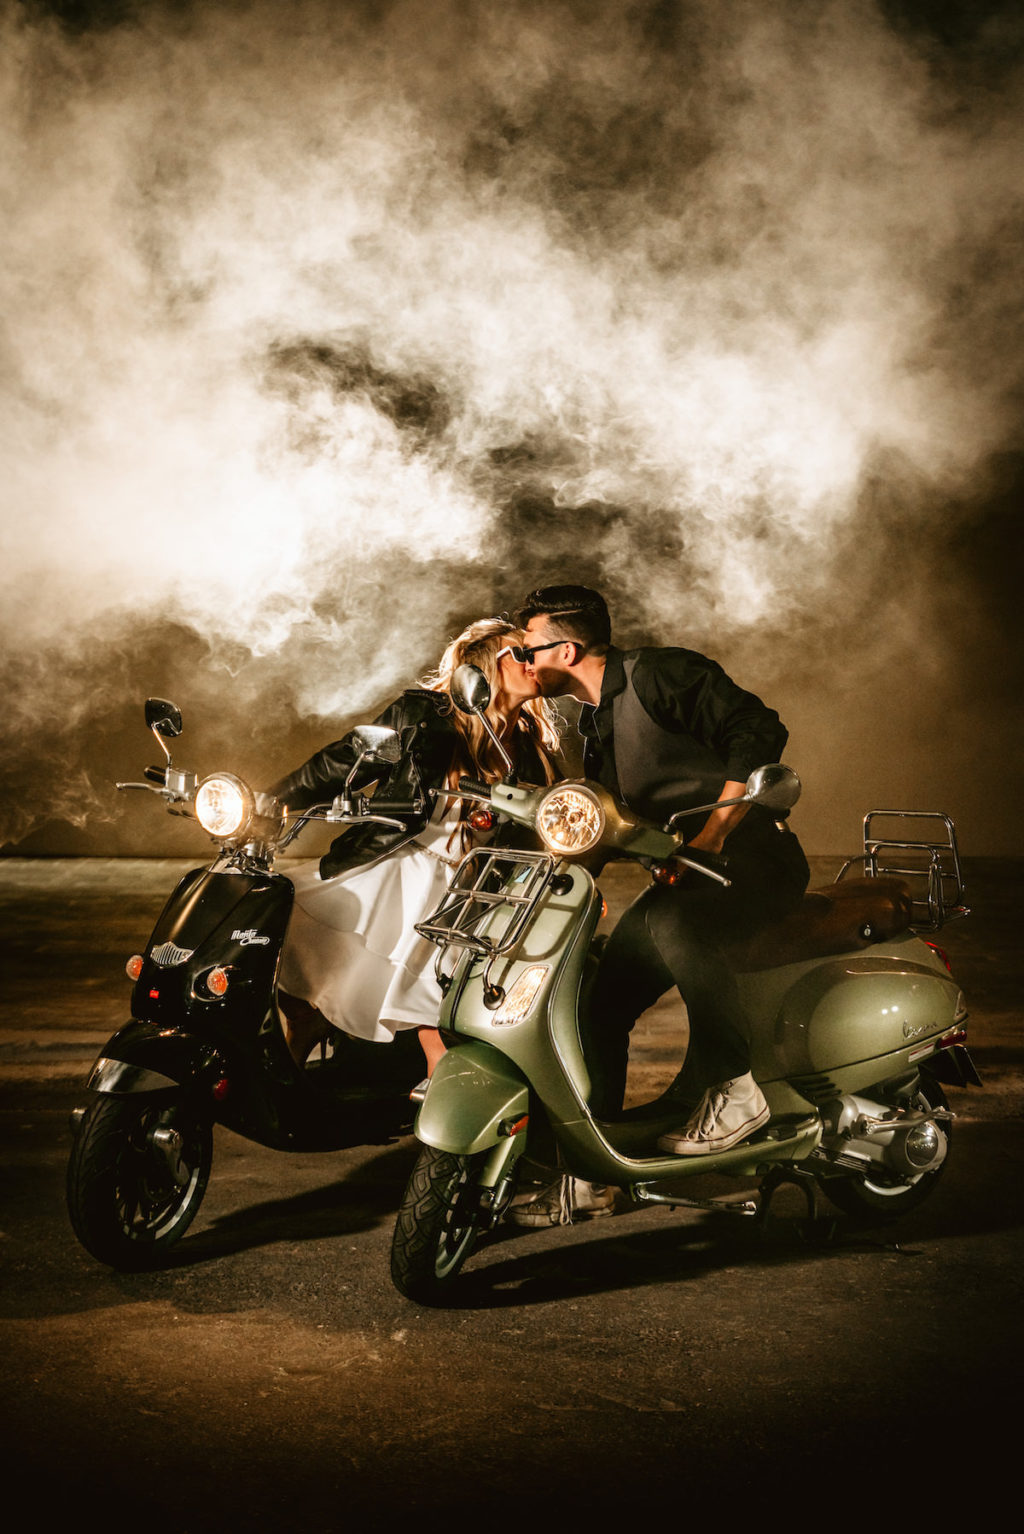 Urban and Edgy Bride in Leather Jacket on Silver Moto Scooter, Groom in Black Dress Shirt and Pants with Gray Vest on Black Scooter and Smoke | Tampa Bay Wedding Photographer Bonnie Newman Creative | Wedding Designer and Planner UNIQUE Weddings + Events